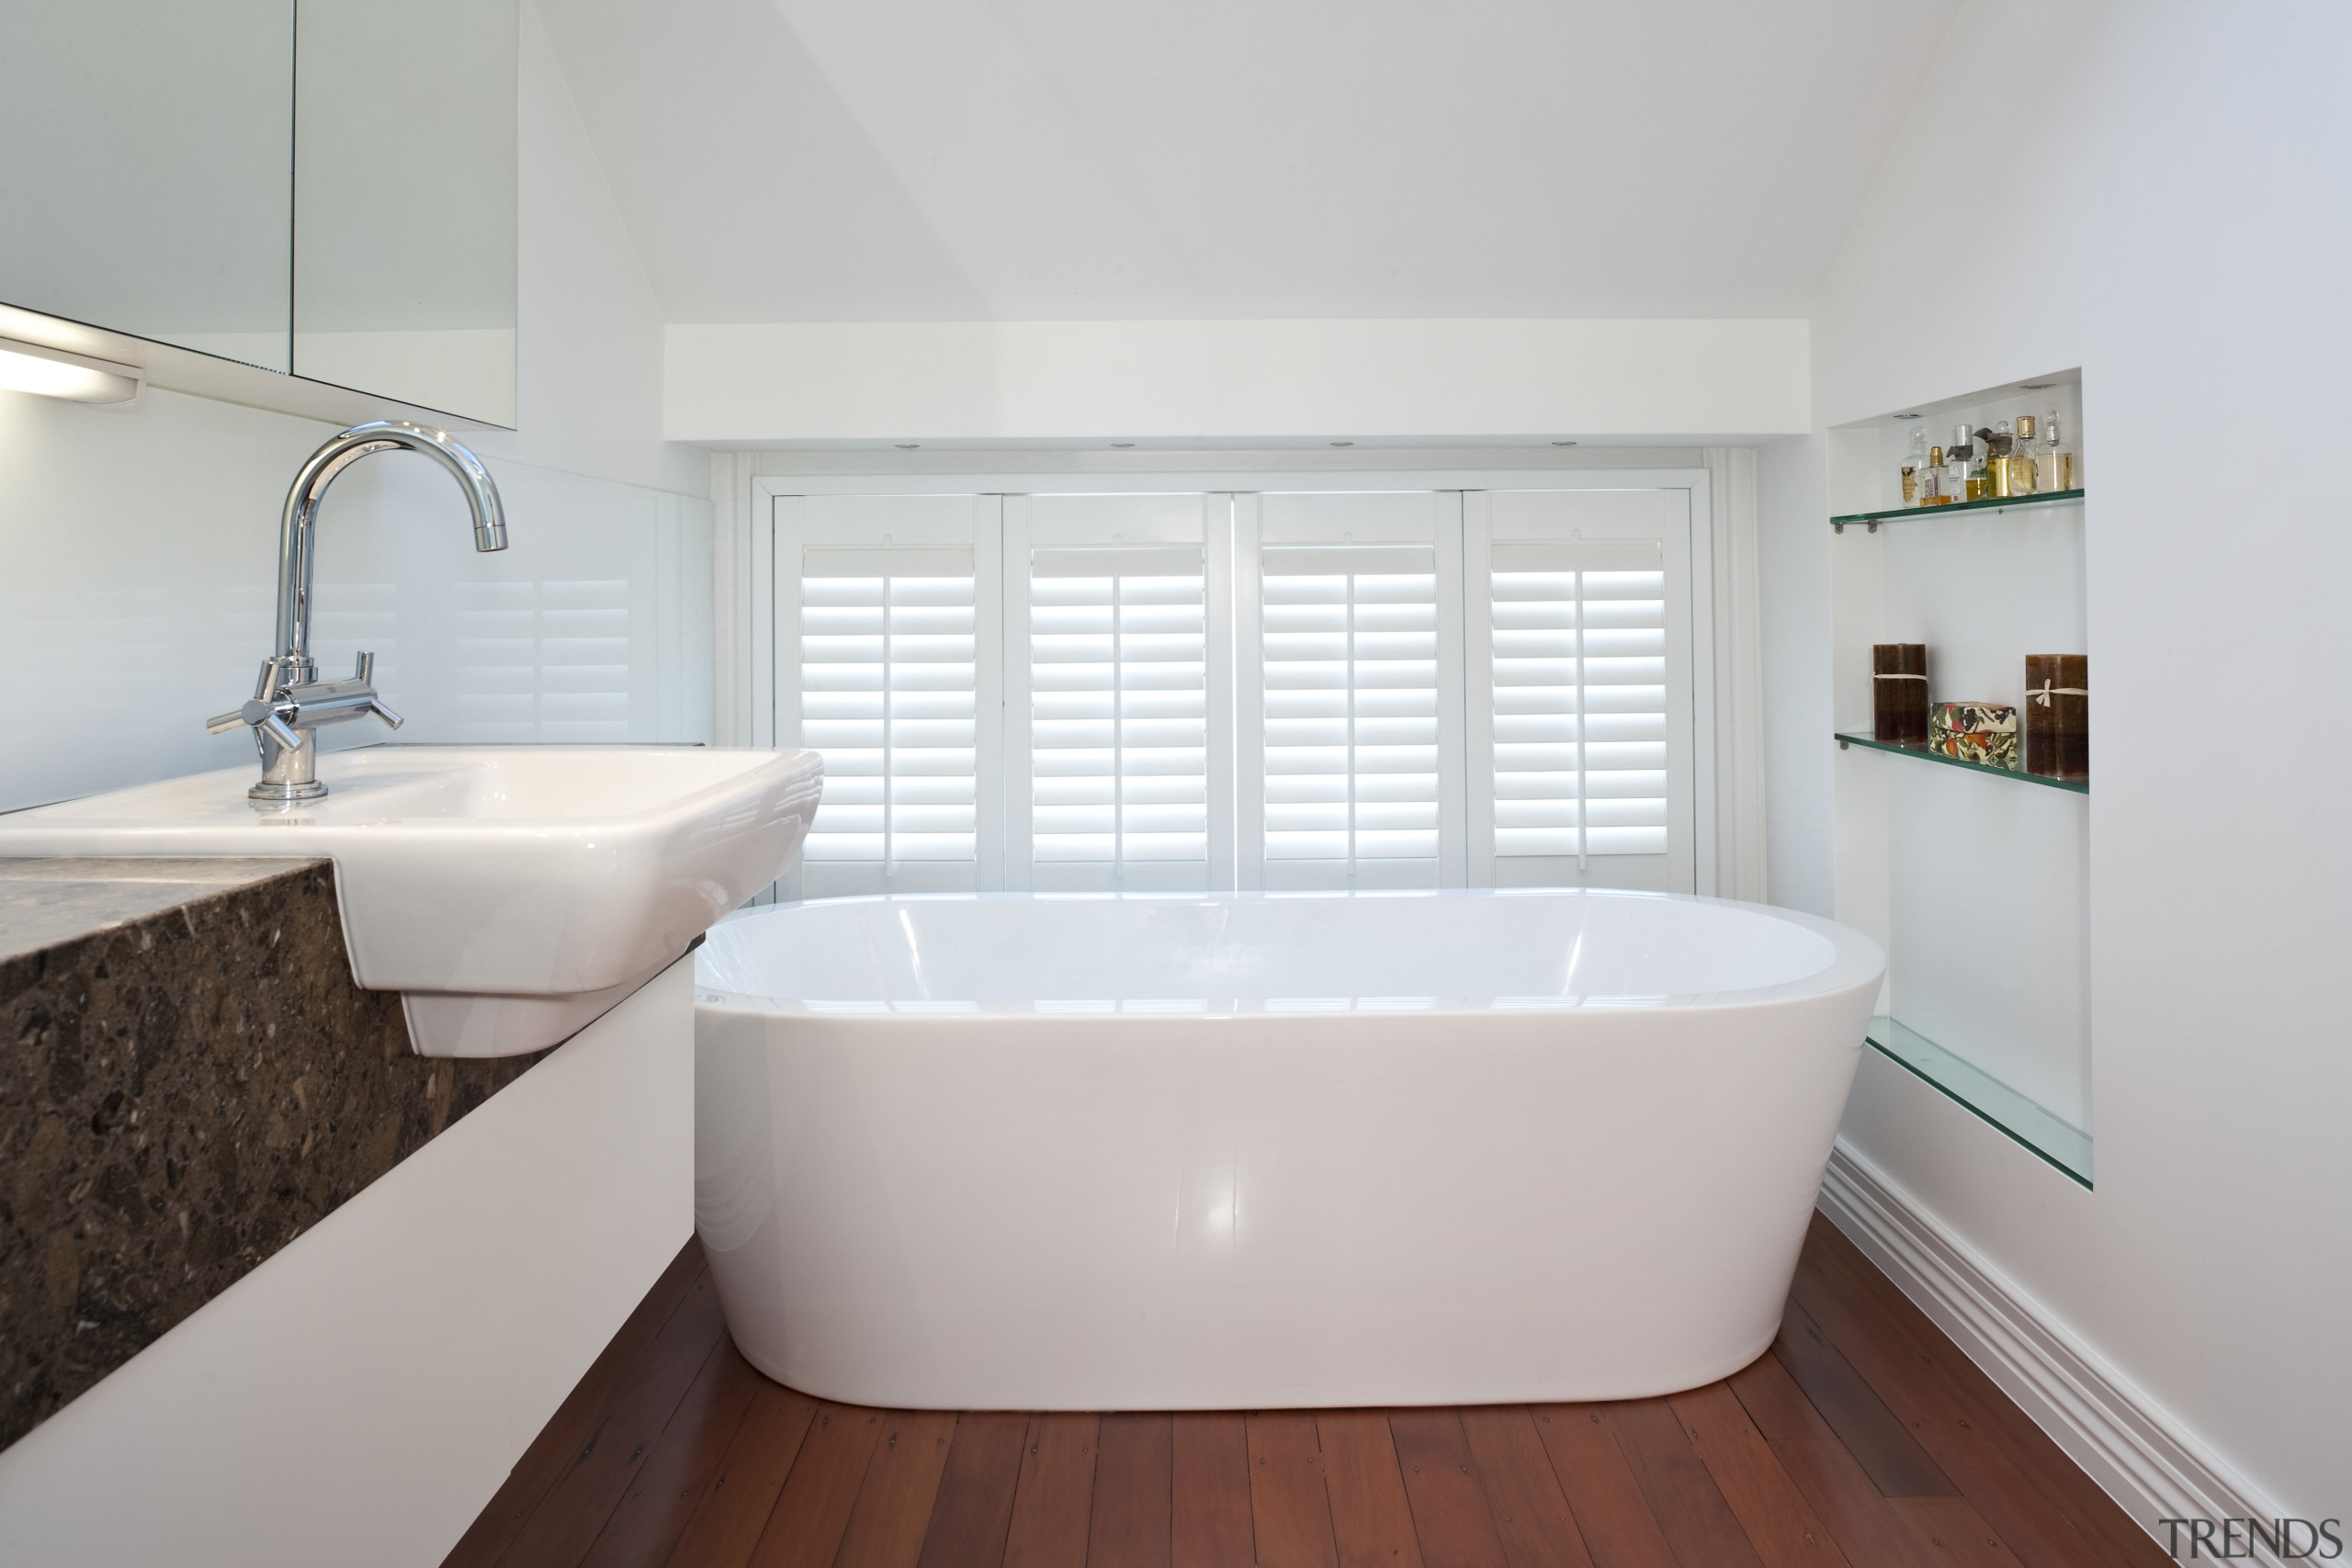 View of this remodeled contemporary bathroom - View architecture, bathroom, bathroom sink, bathtub, floor, home, interior design, plumbing fixture, property, real estate, room, sink, tap, tile, window, gray, white